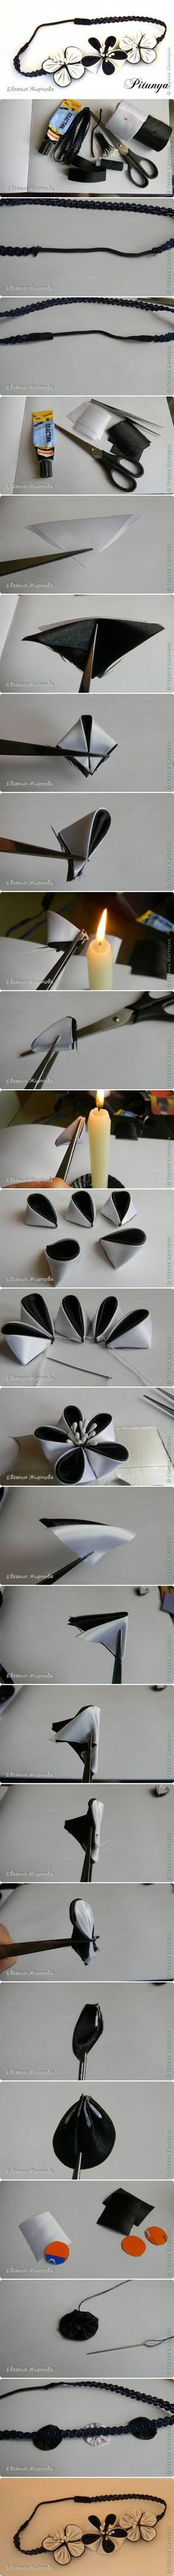 DIY Ribbon Flower flowers diy crafts home made easy crafts craft idea crafts ideas diy ideas diy crafts diy idea do it yourself diy projects diy craft handmade how to tutorial